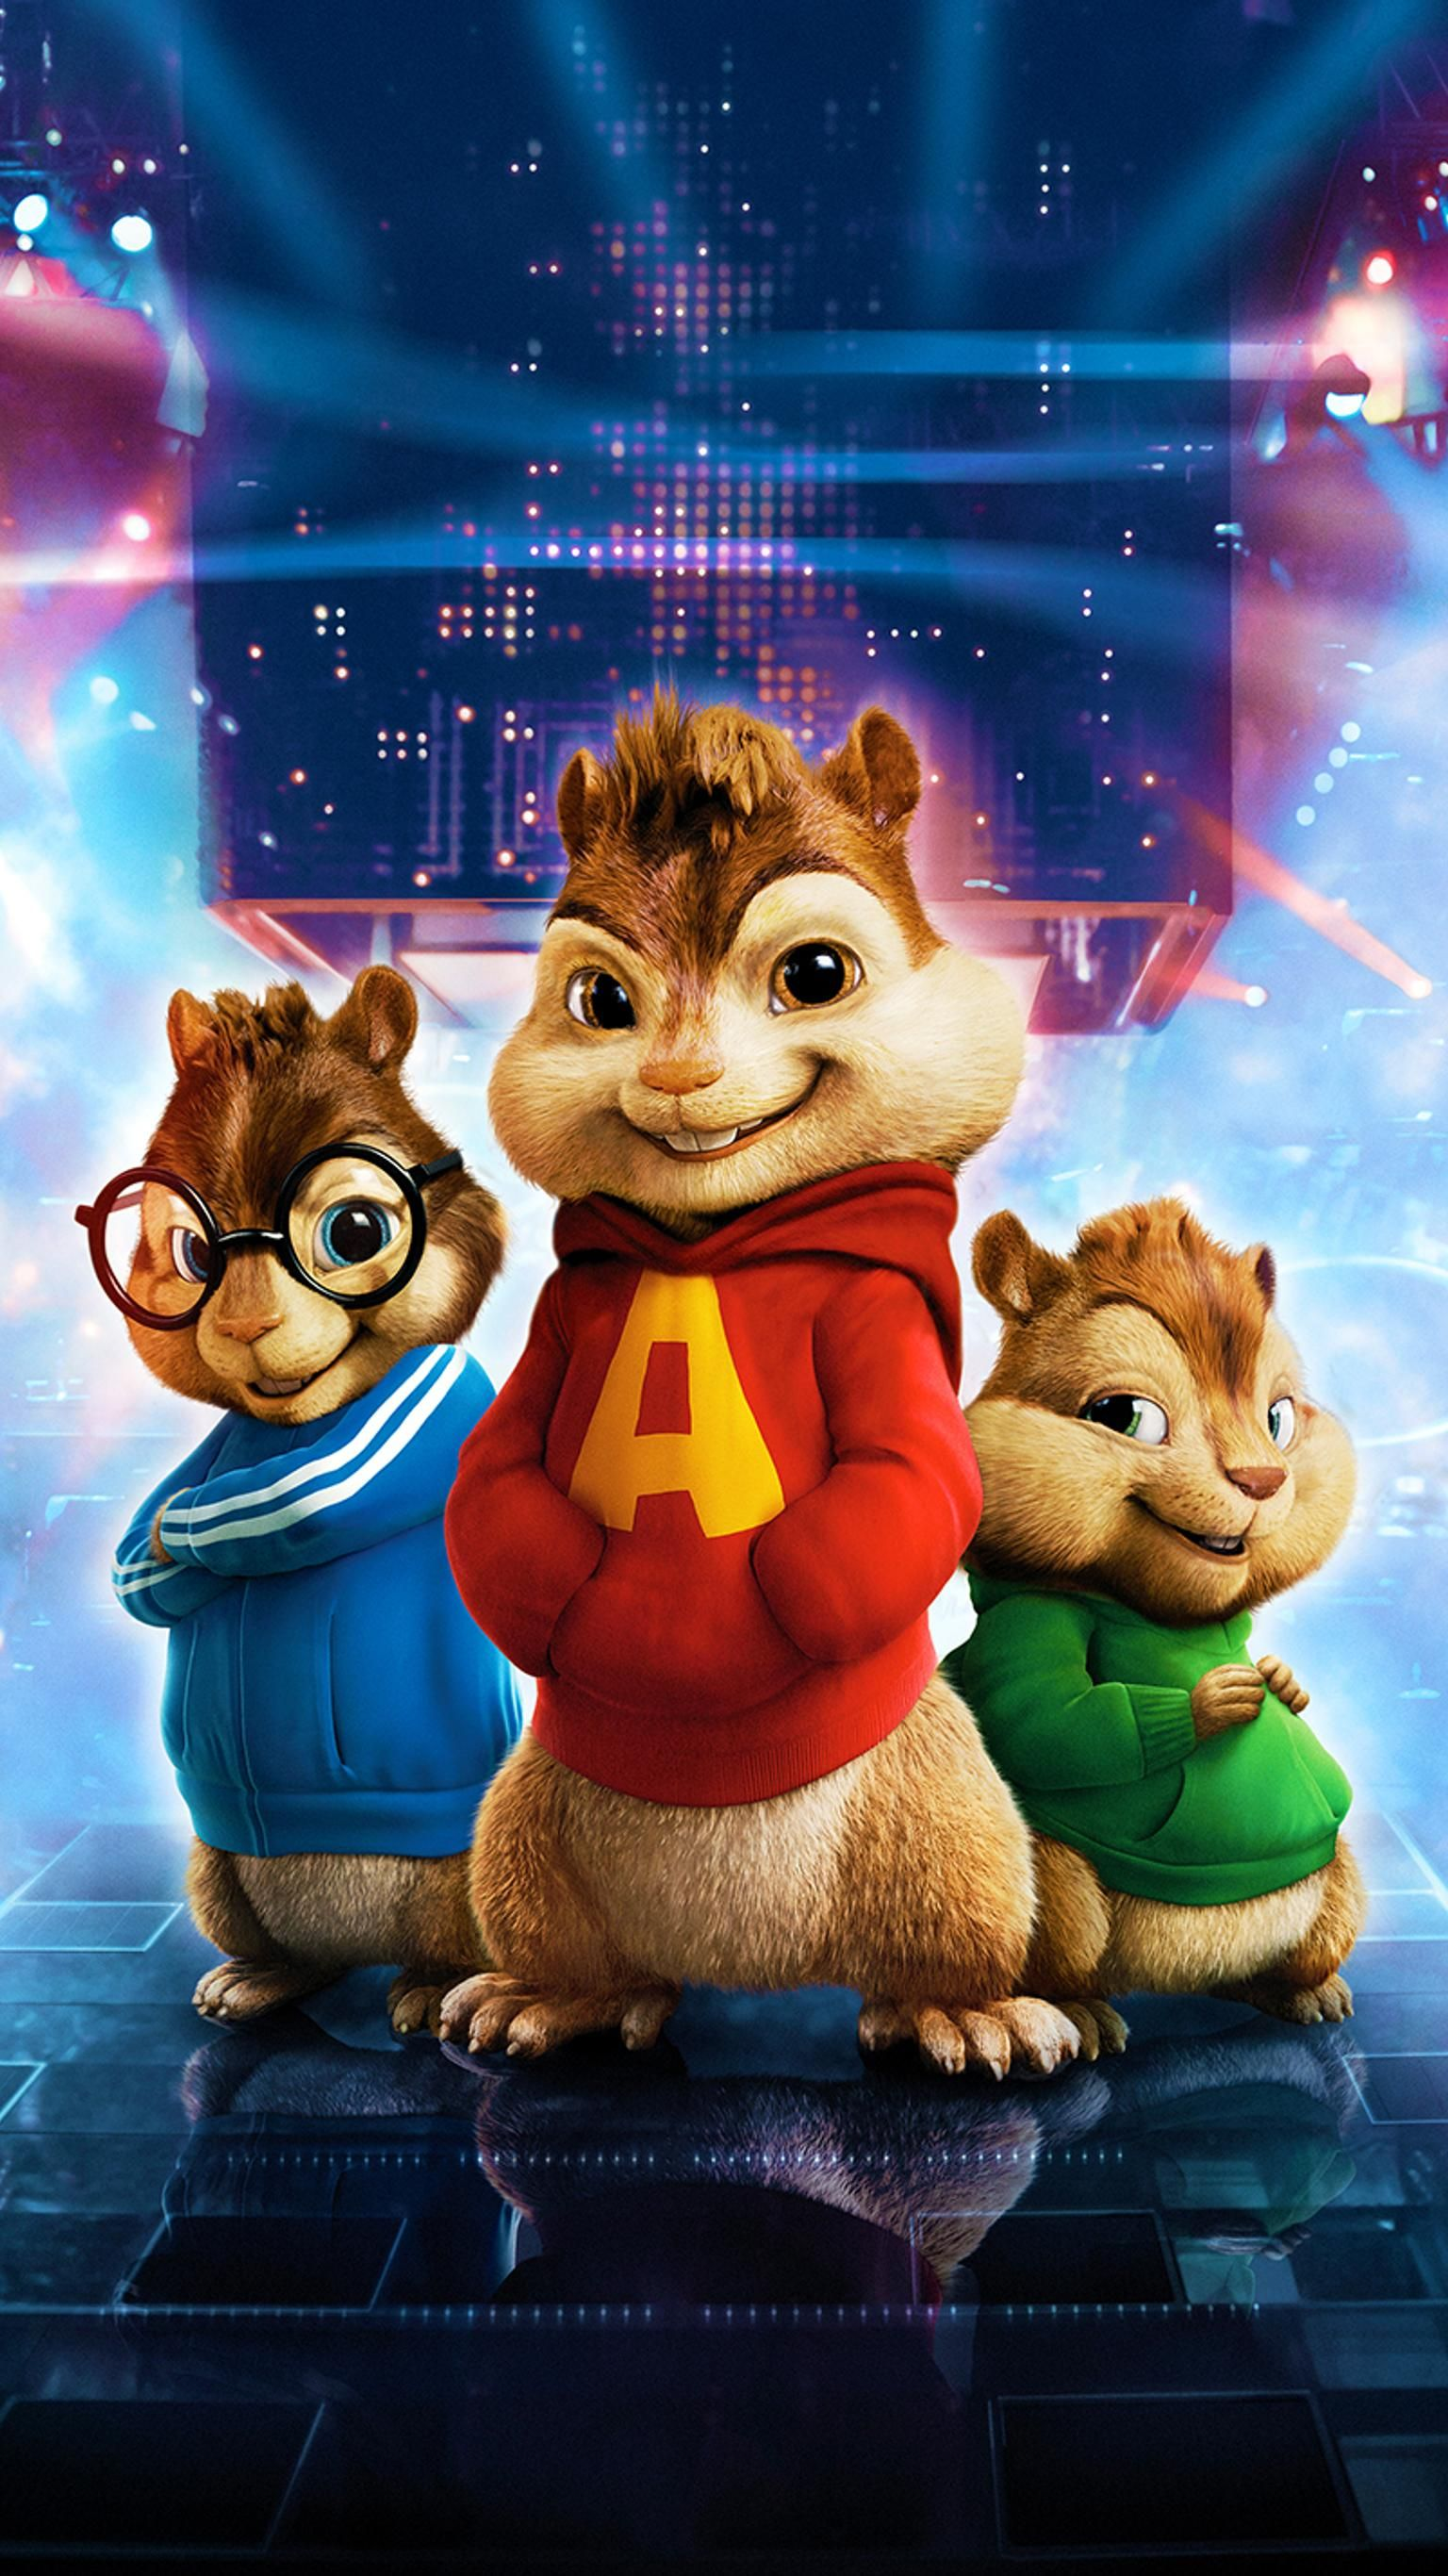 Alvin Et Les Chipmunks Fond D Ecran En Direct De Dessin Anime 1536x2732 Wallpapertip